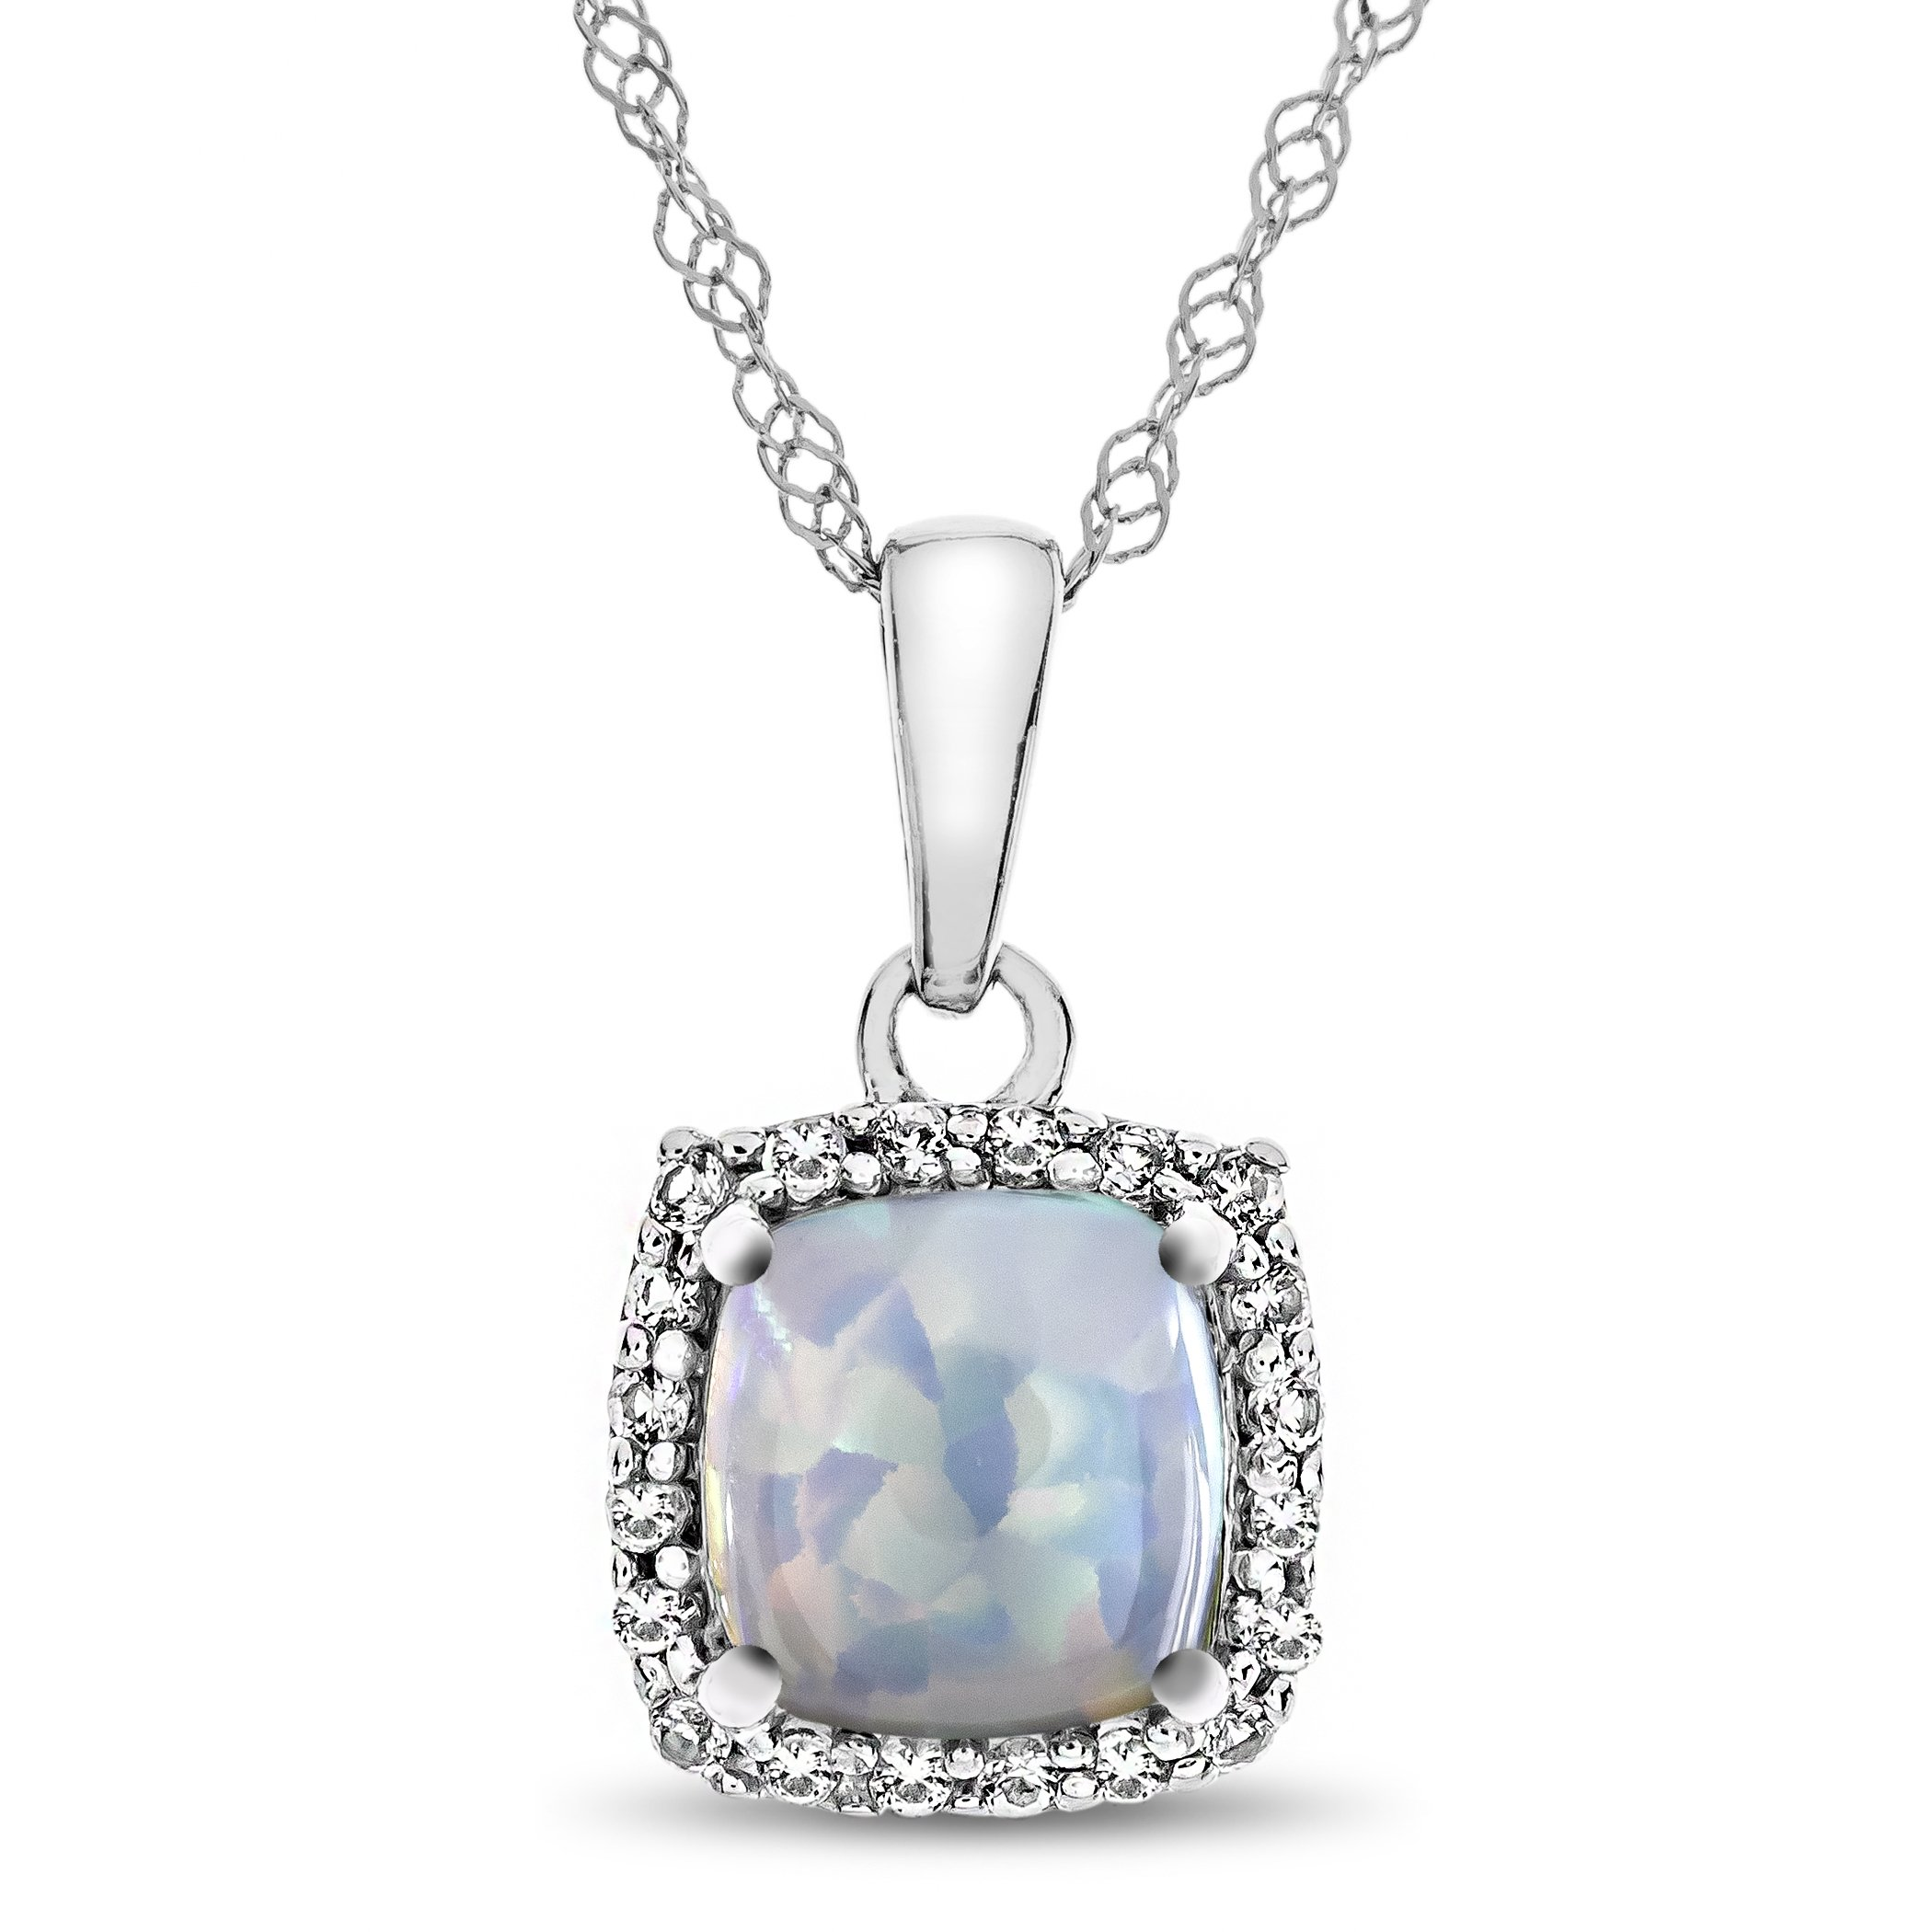 10k White Gold 6mm Cushion Created Opal with White Topaz accent stones Halo Pendant Necklace